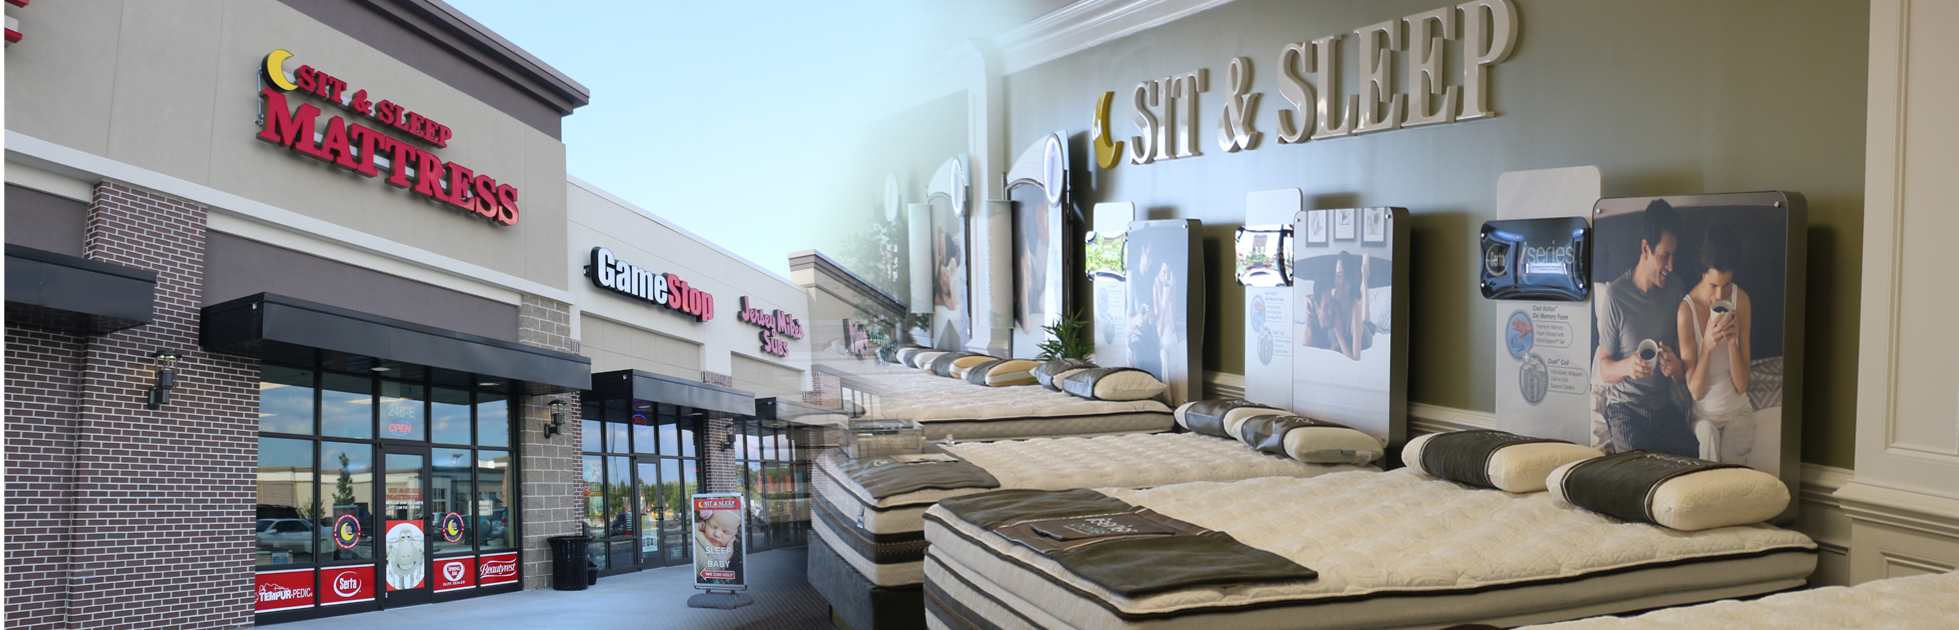 sit sleep the best mattresses in statesboro georgia